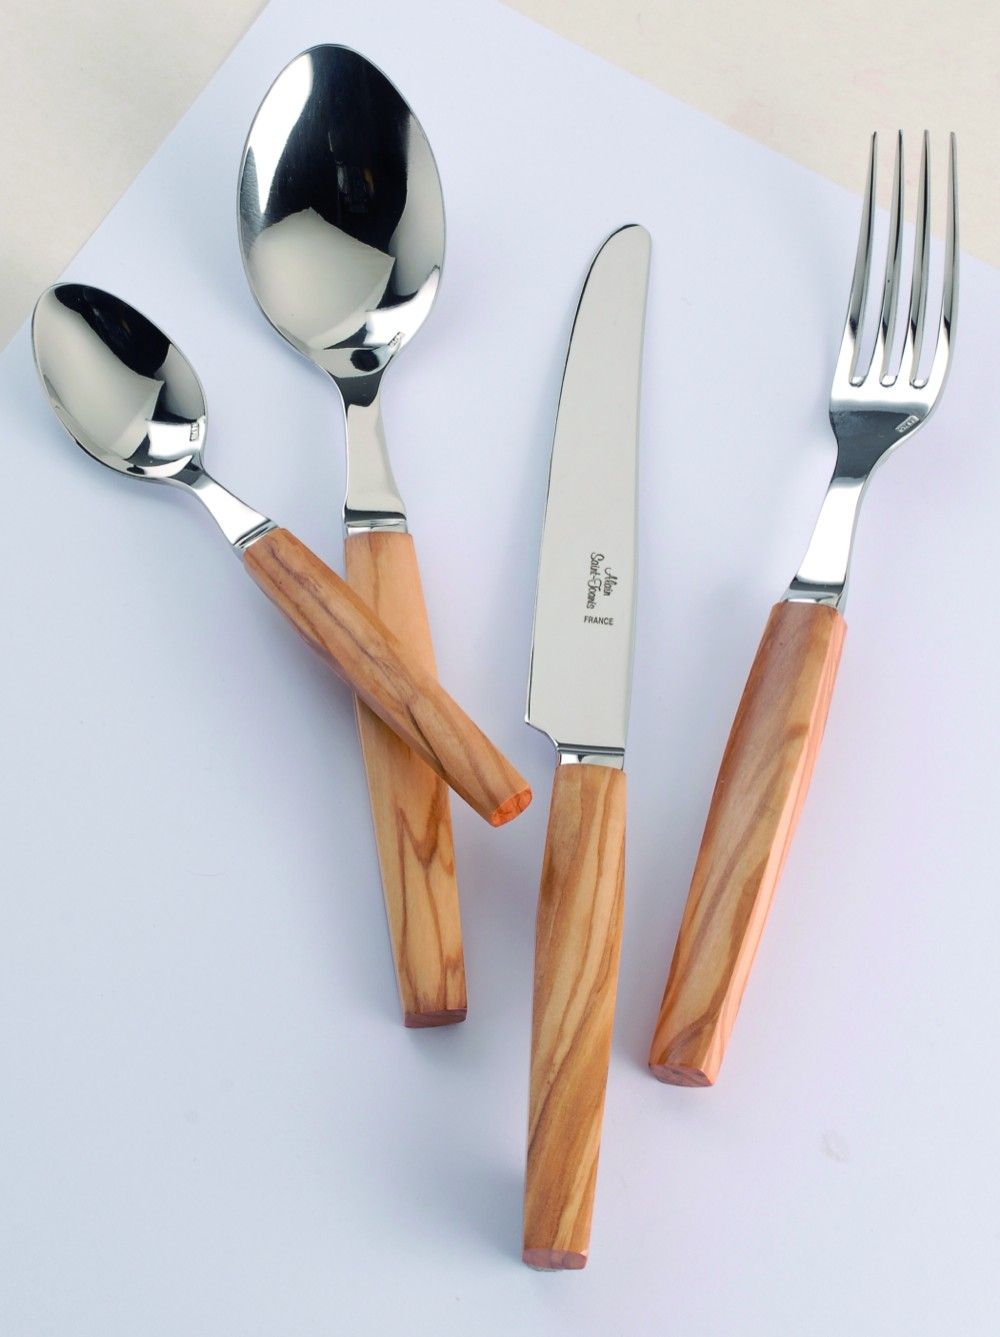 Alain Saint Joanis Geneve Olive Wood Five Piece Place Setting Stainless Steel